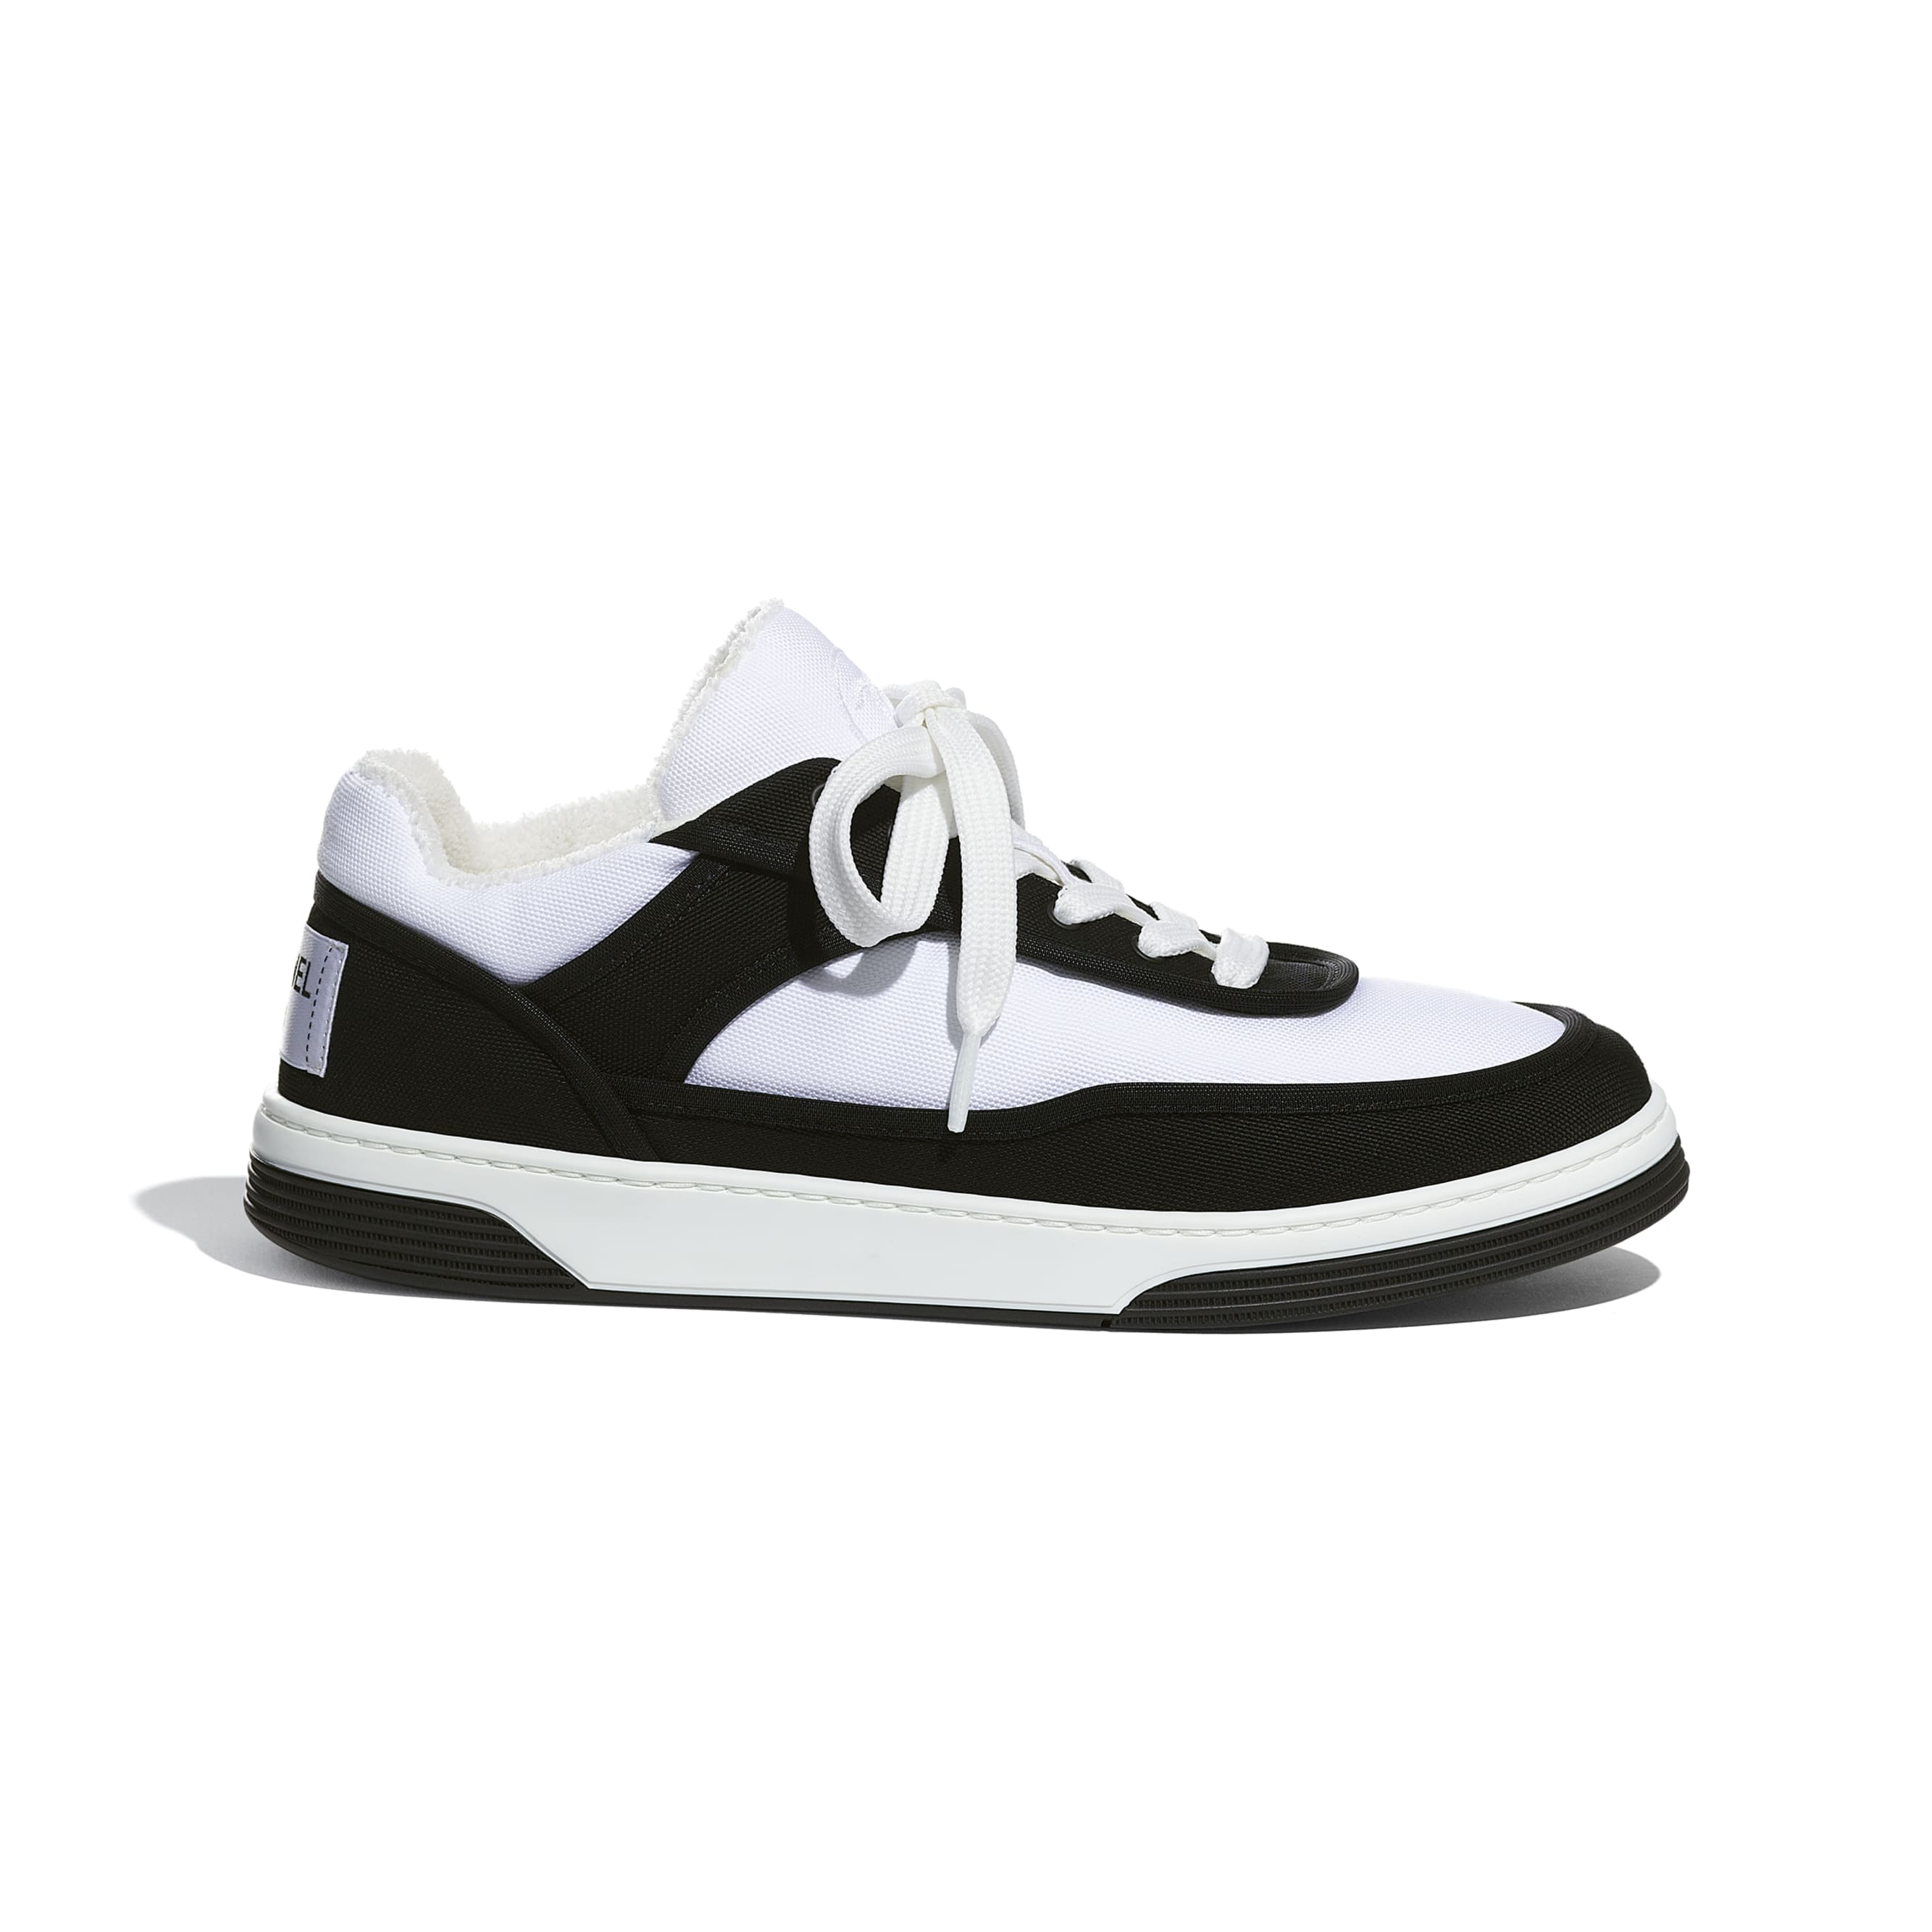 Trainers - Black & White - Fabric - CHANEL - Default view - see standard sized version